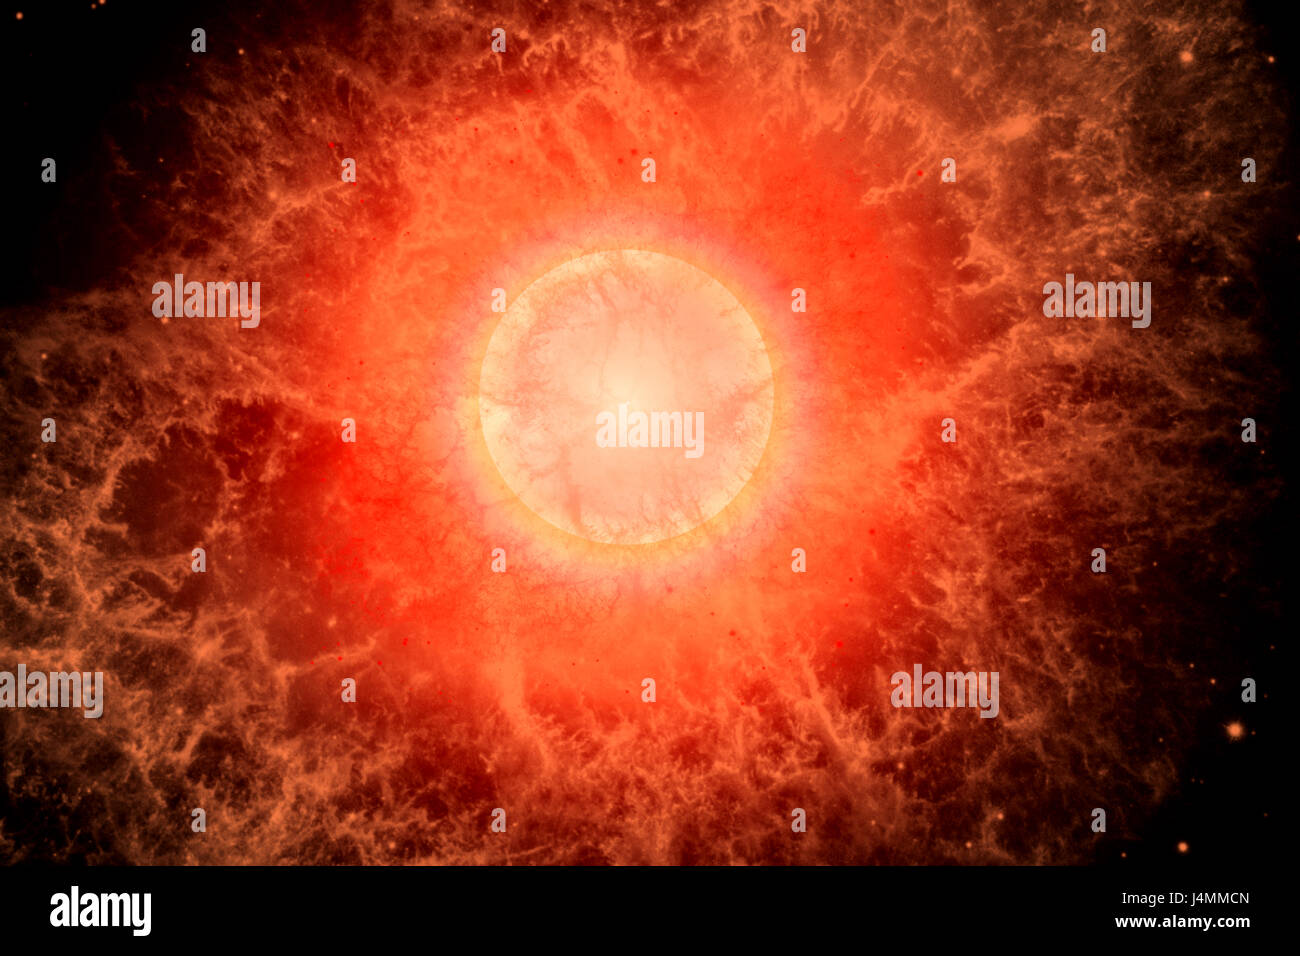 A Supernova, The End Of A Dying Star. - Stock Image